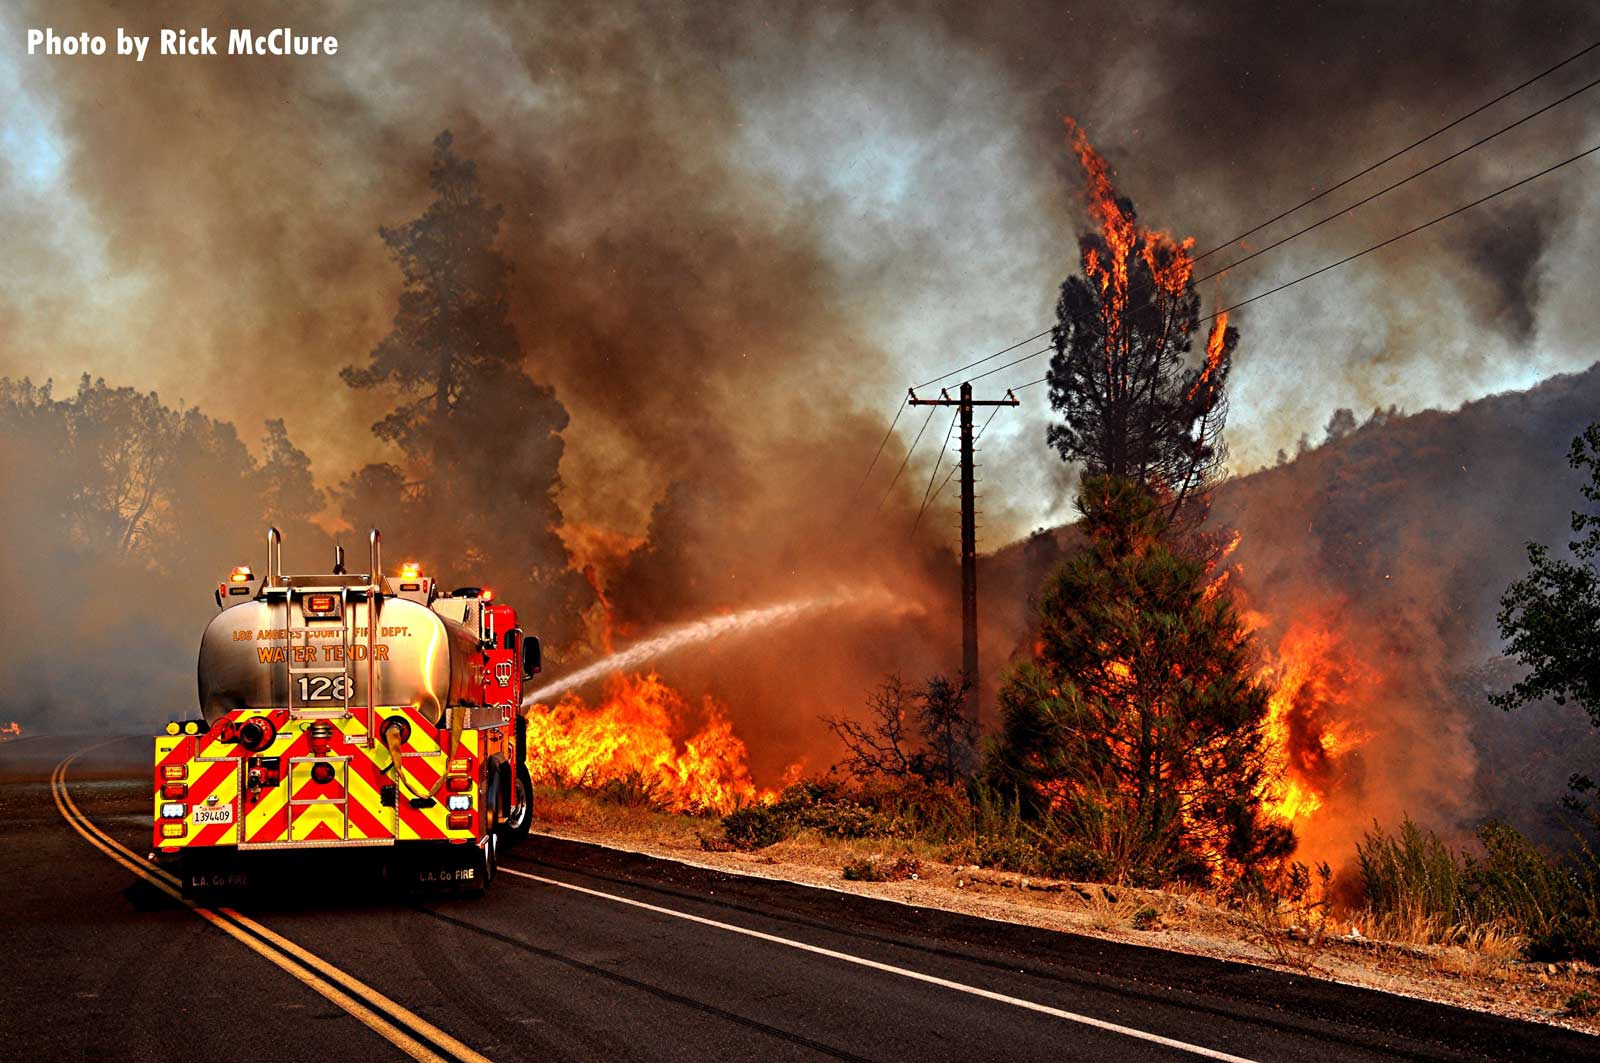 Fire apparatus battling wildfire